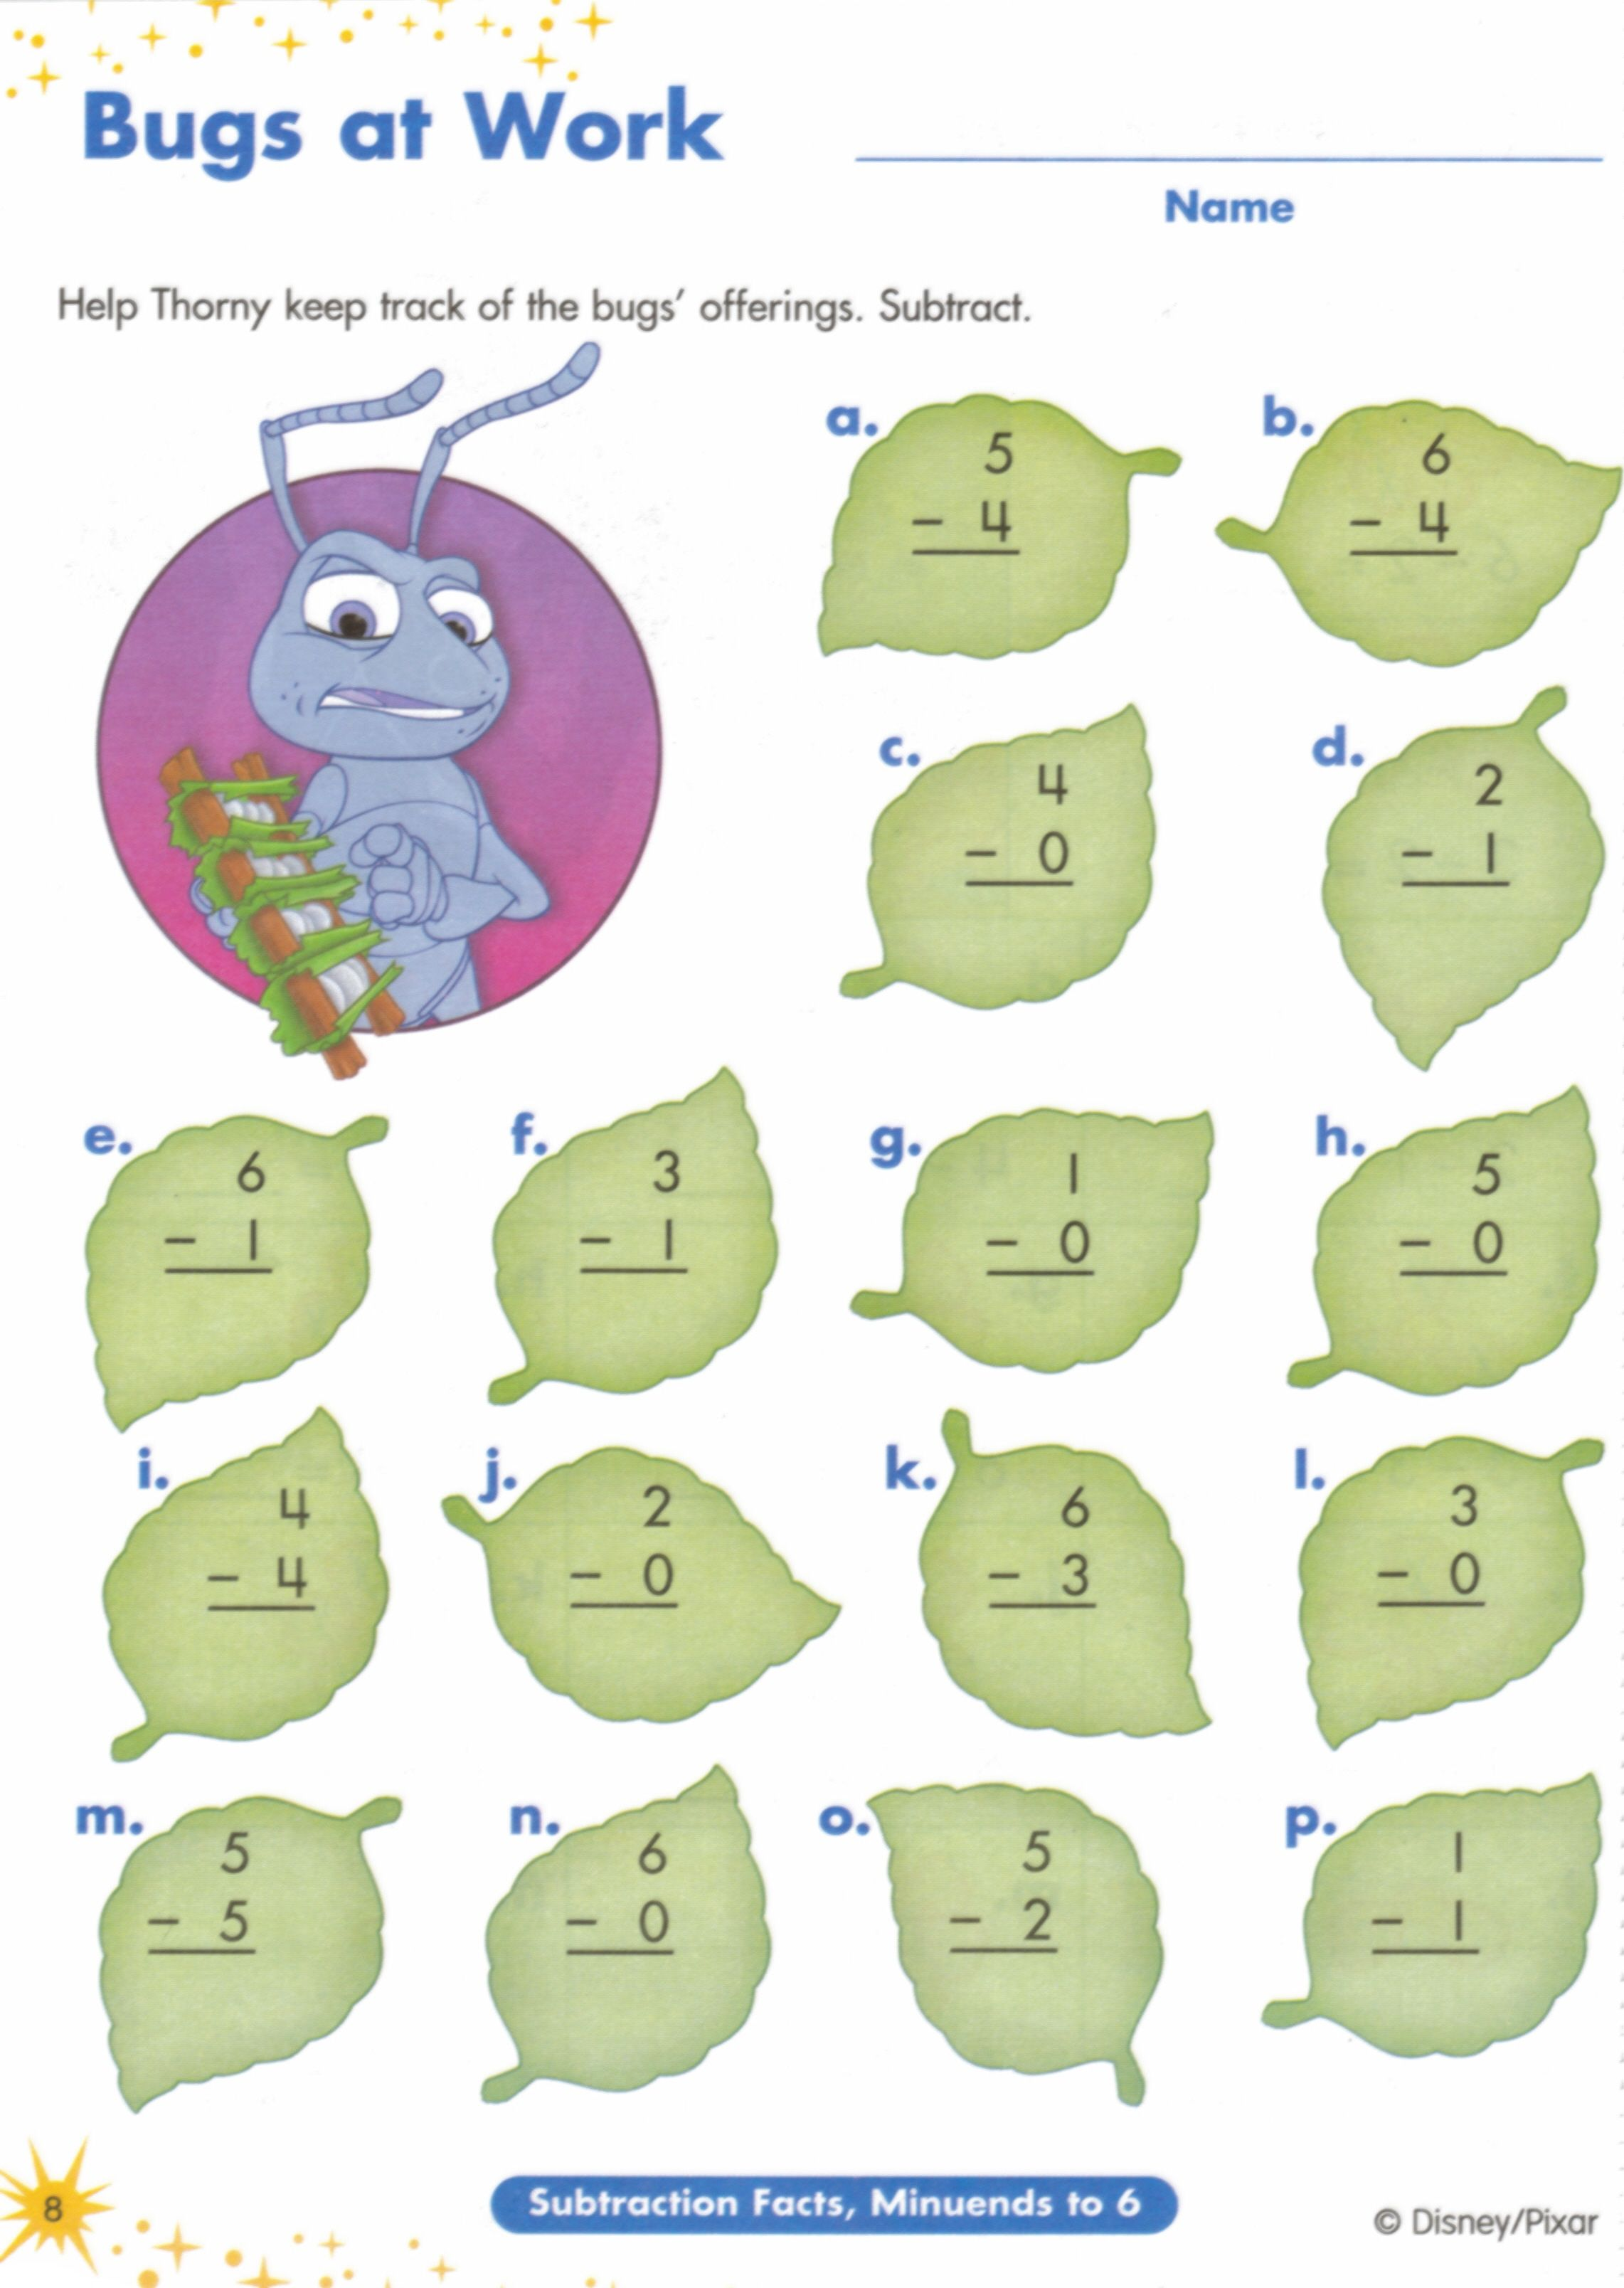 Proatmealus  Nice  Images About Worksheets On Pinterest  Fun Facts For Kids  With Heavenly  Images About Worksheets On Pinterest  Fun Facts For Kids Earth Day Worksheets And Jungles With Alluring Homophones Worksheets Rd Grade Also Property Division Worksheet In Addition Creating Spelling Worksheets And Pancake Day Worksheet As Well As Horrid Henry Worksheets Additionally Grade  Printable Worksheets From Pinterestcom With Proatmealus  Heavenly  Images About Worksheets On Pinterest  Fun Facts For Kids  With Alluring  Images About Worksheets On Pinterest  Fun Facts For Kids Earth Day Worksheets And Jungles And Nice Homophones Worksheets Rd Grade Also Property Division Worksheet In Addition Creating Spelling Worksheets From Pinterestcom